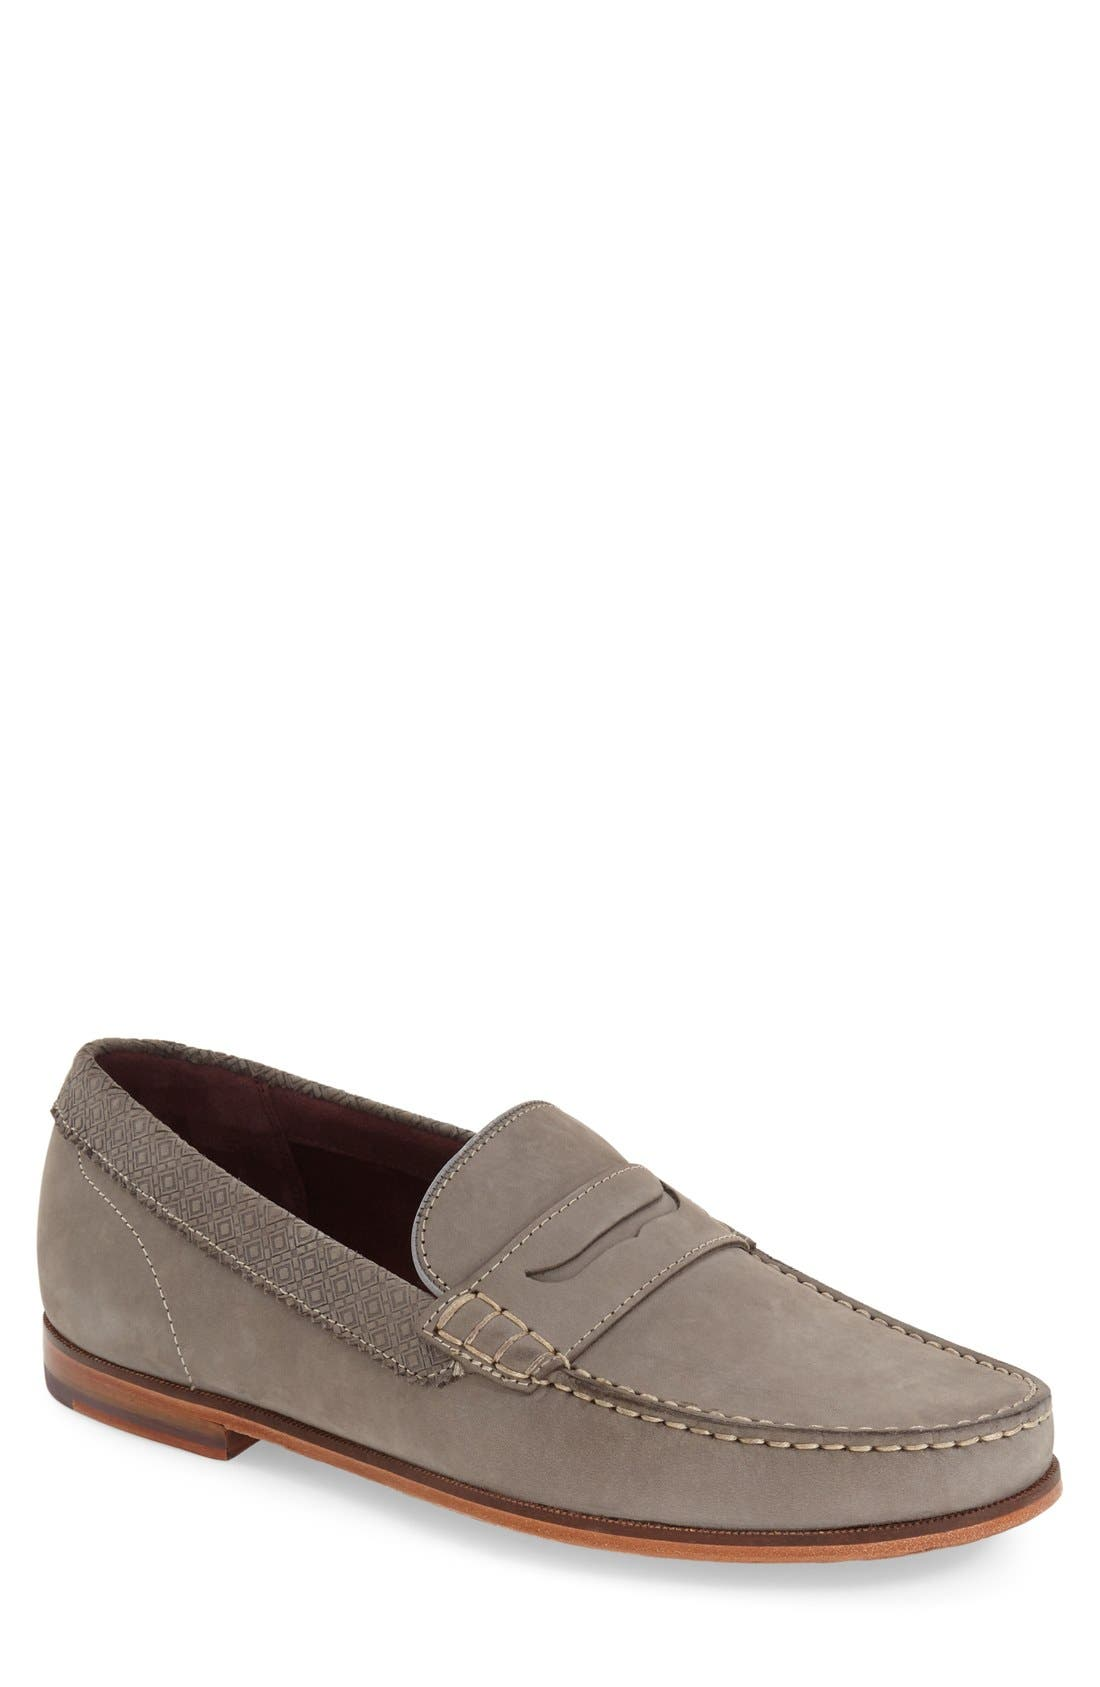 'Miicke 2' Penny Loafer,                             Main thumbnail 1, color,                             055